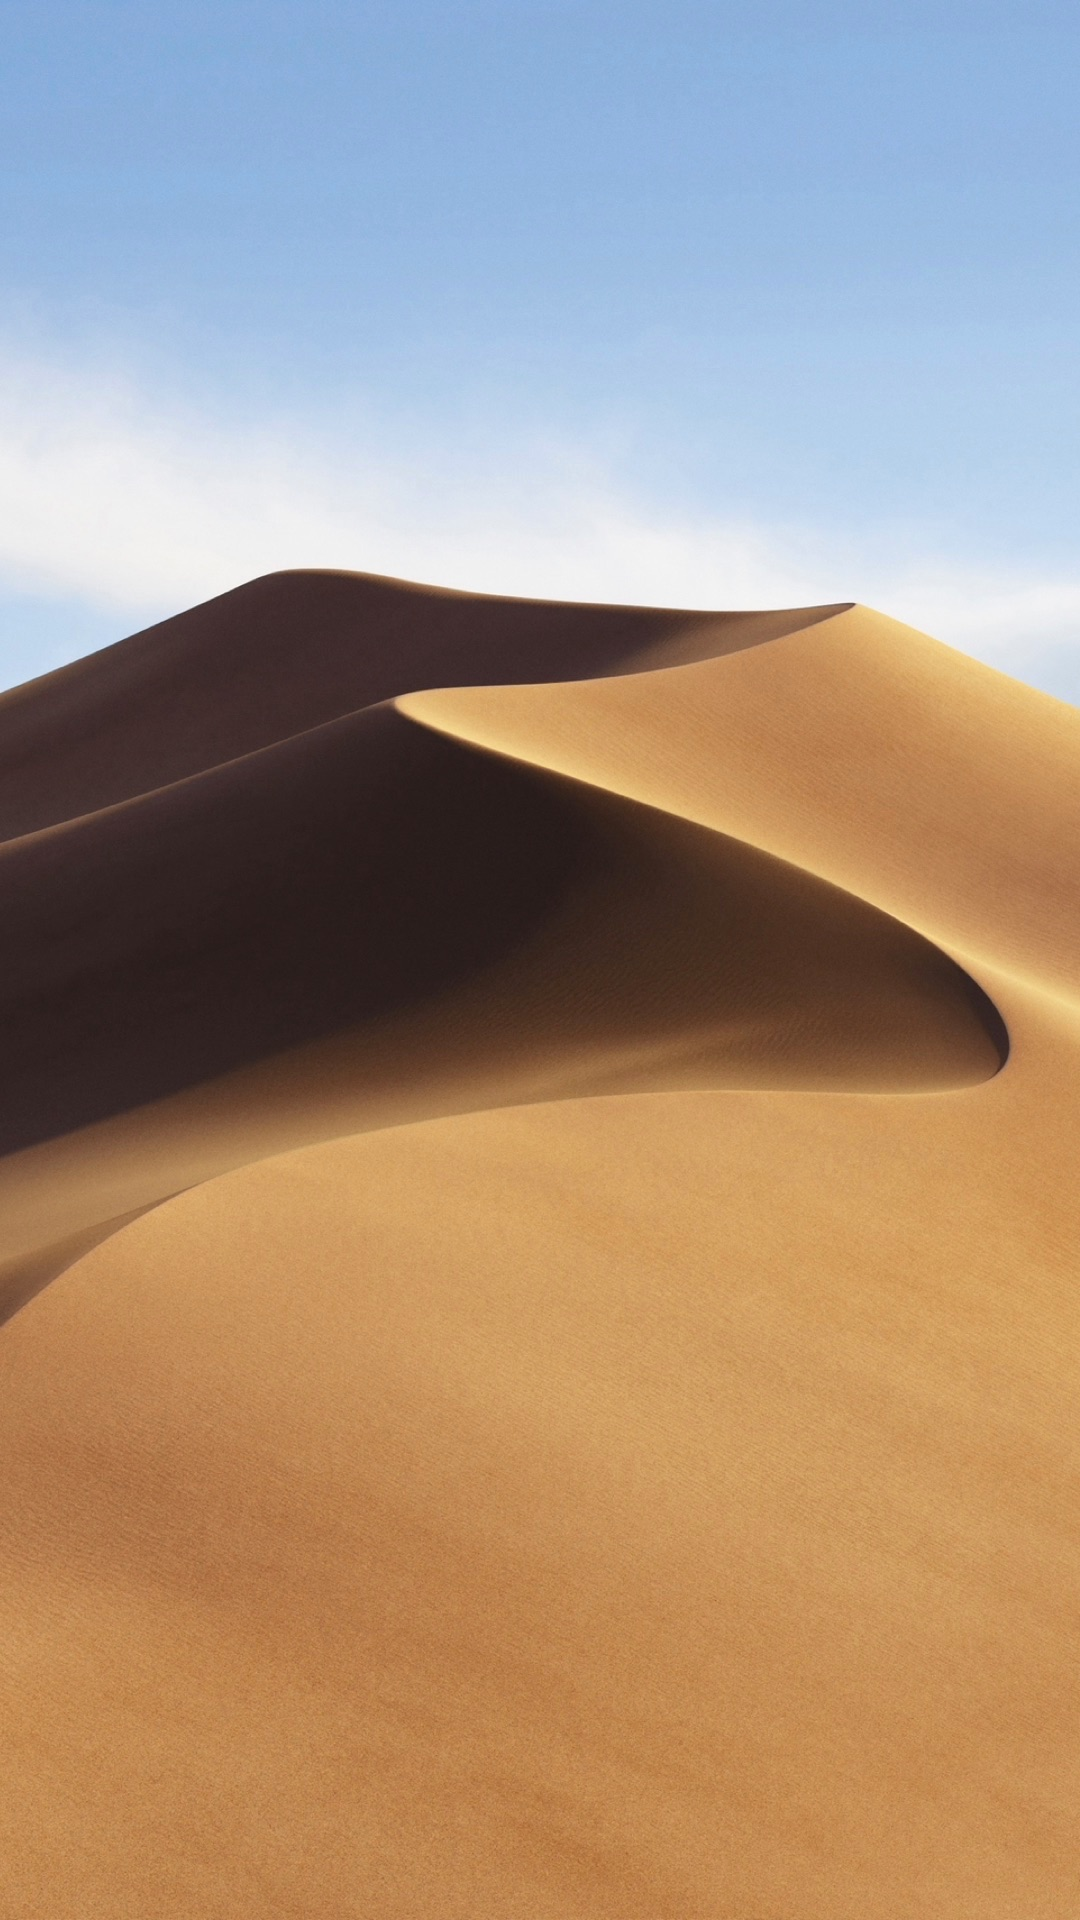 Wallpaper Weekends Macos Mojave Wallpapers For Iphone Ipad And Apple Watch